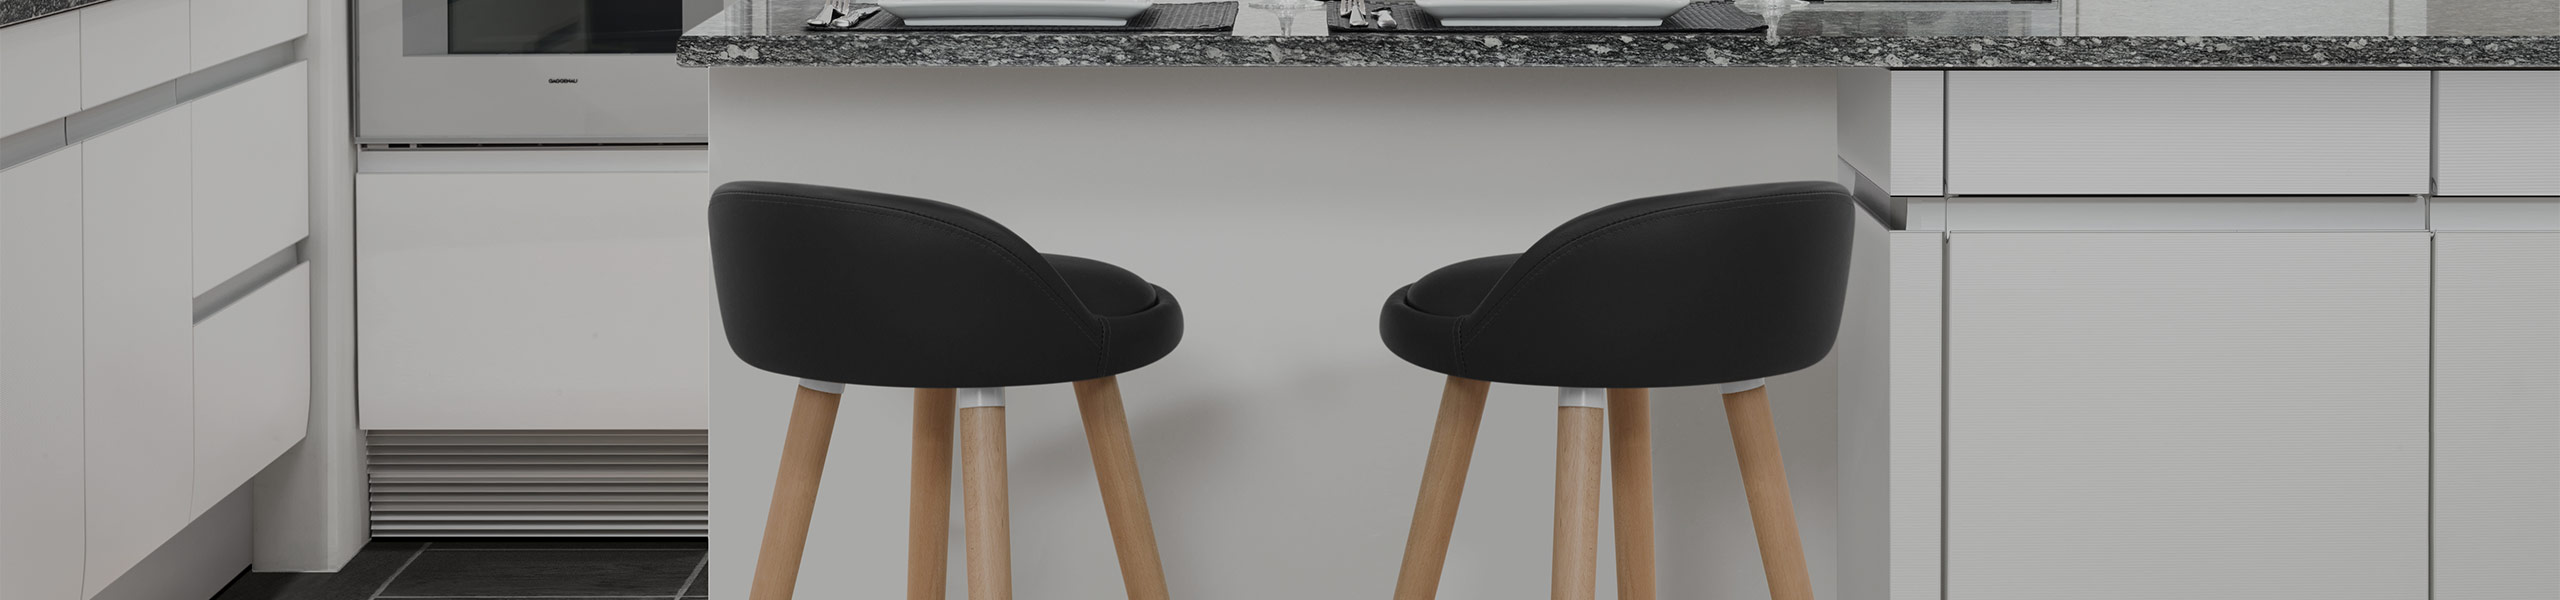 Jive Wooden Stool Black Video Banner